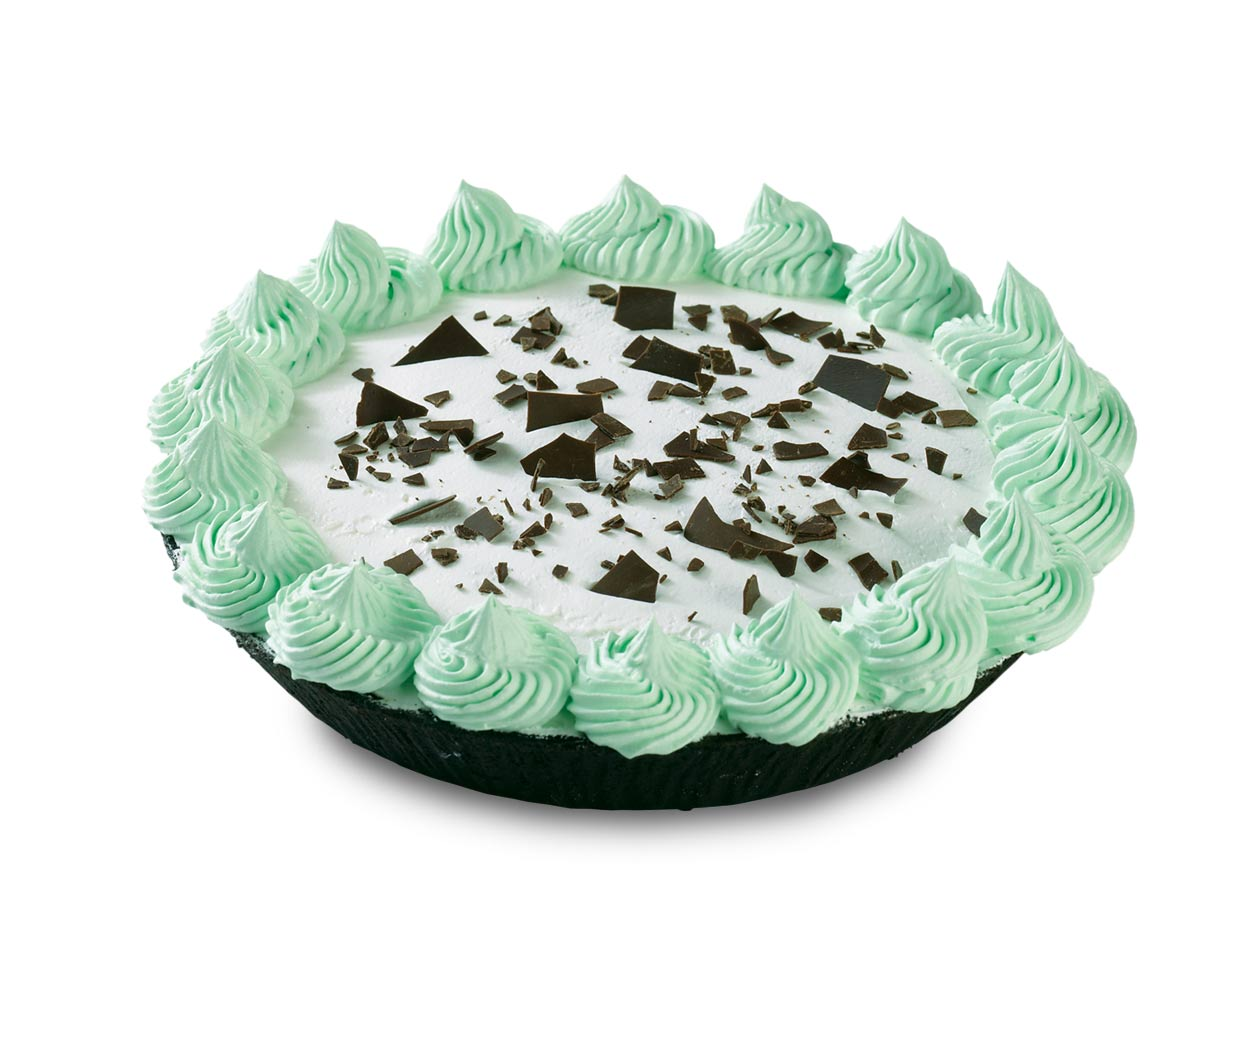 Mint Chocolate Chip Ice Cream Cake Buy